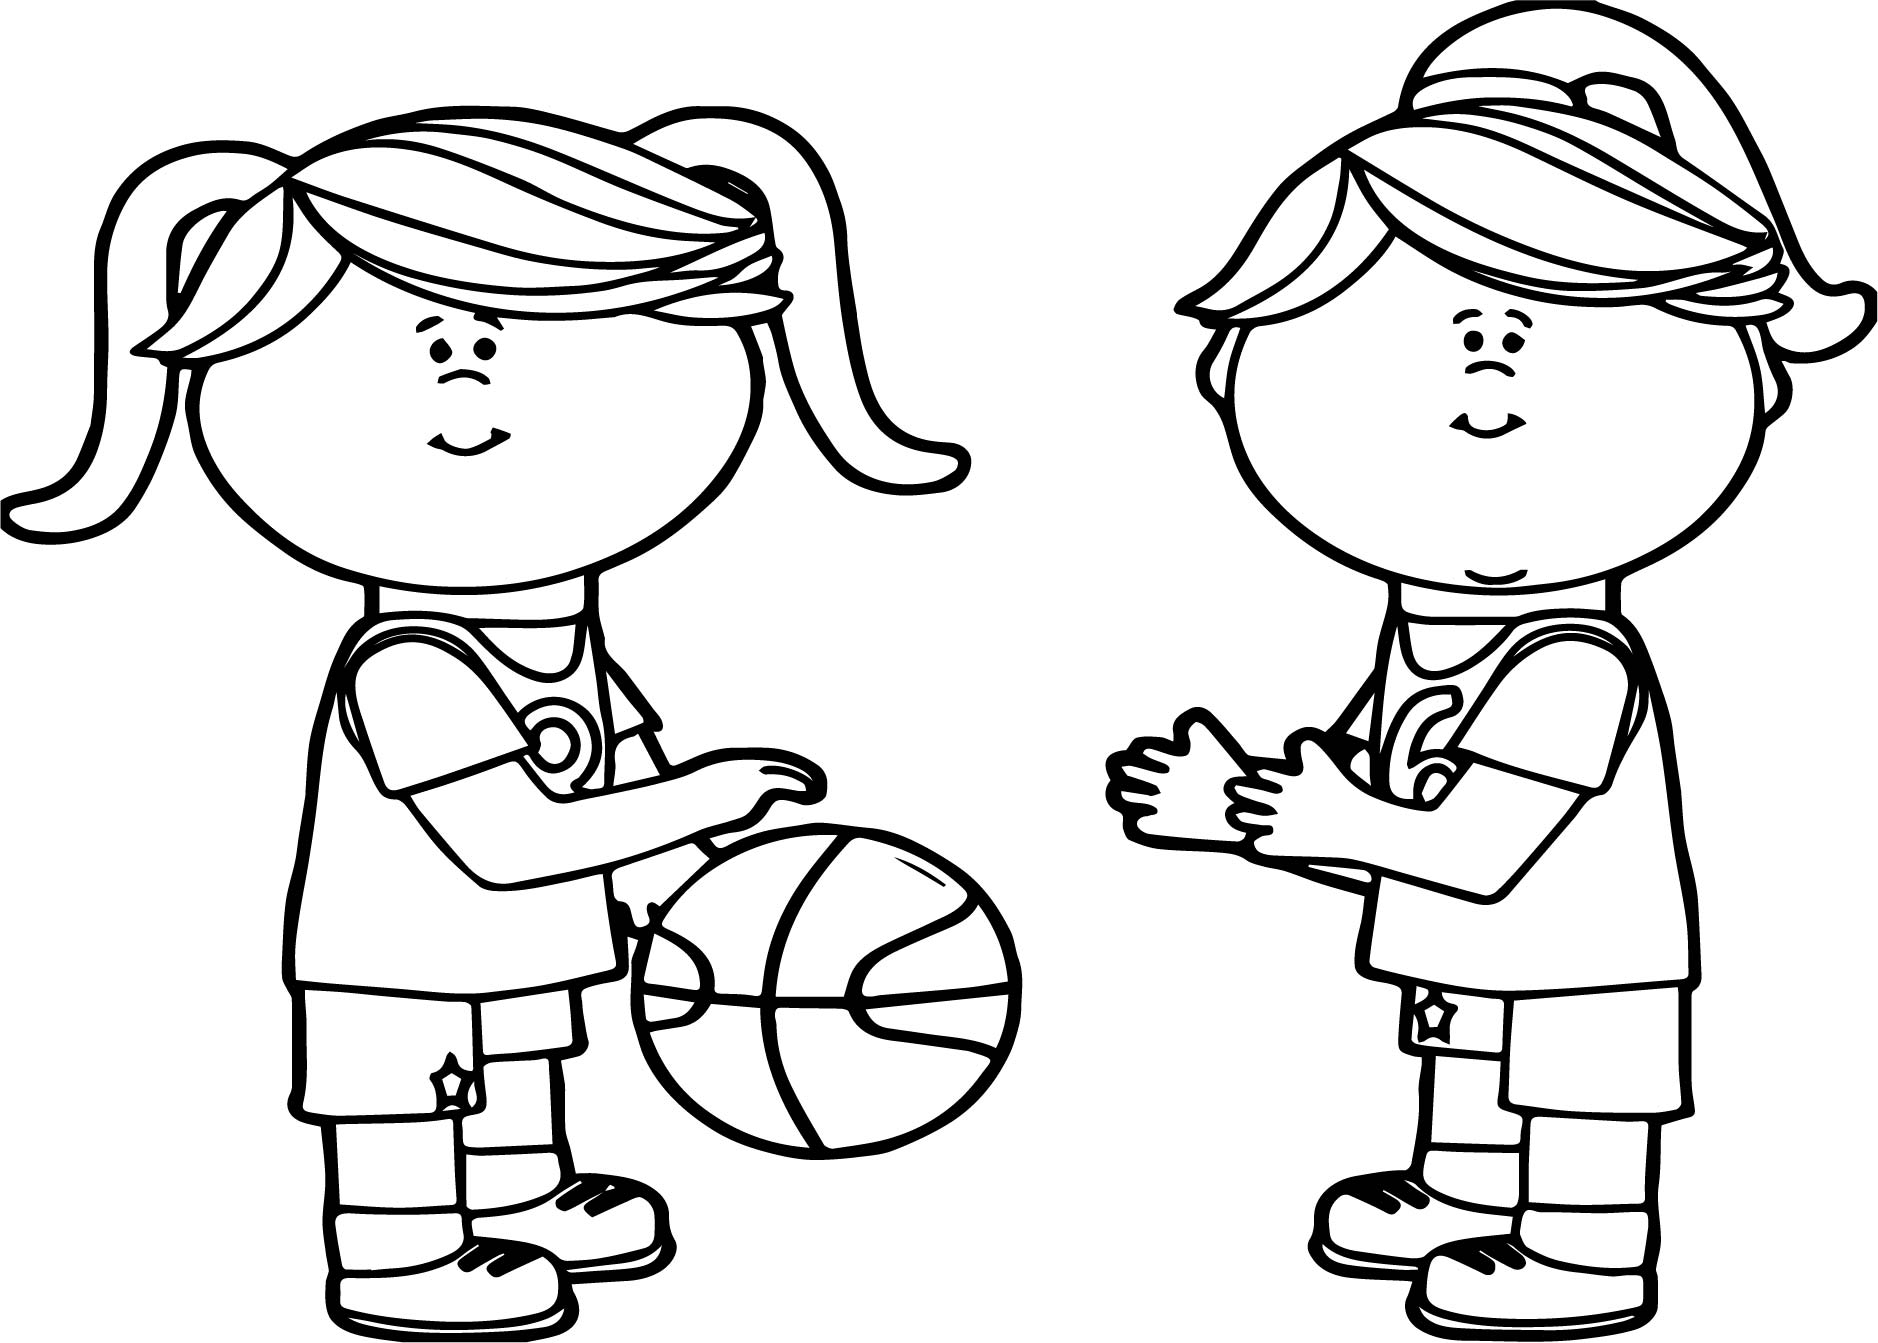 Real Basketball Coloring Pages. Girls Passing Playing Basketball Coloring Page  Wecoloringpage